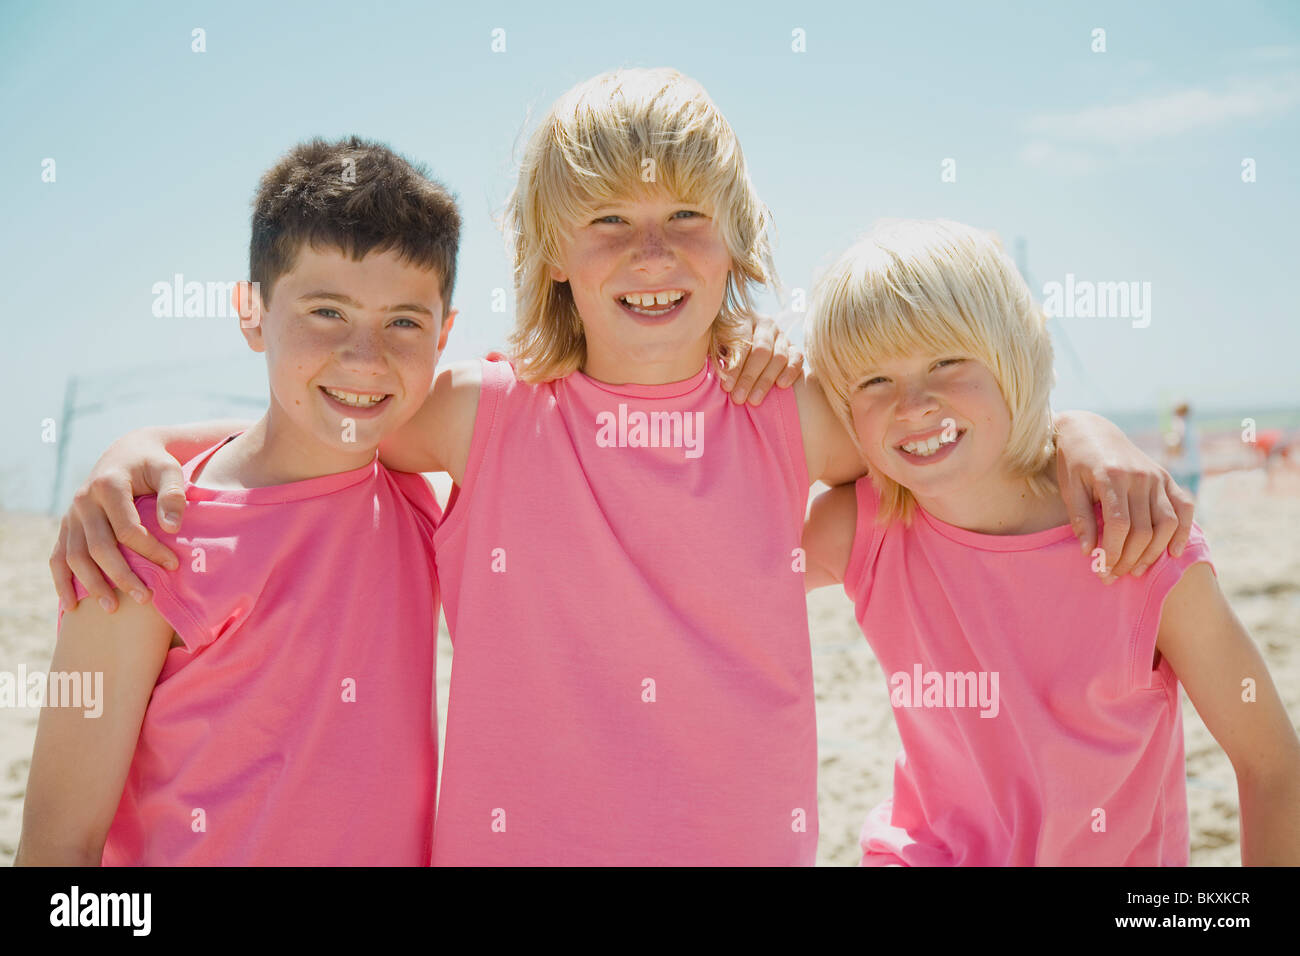 Three smiling boys on a beach wearing identical pink t-shirts ...